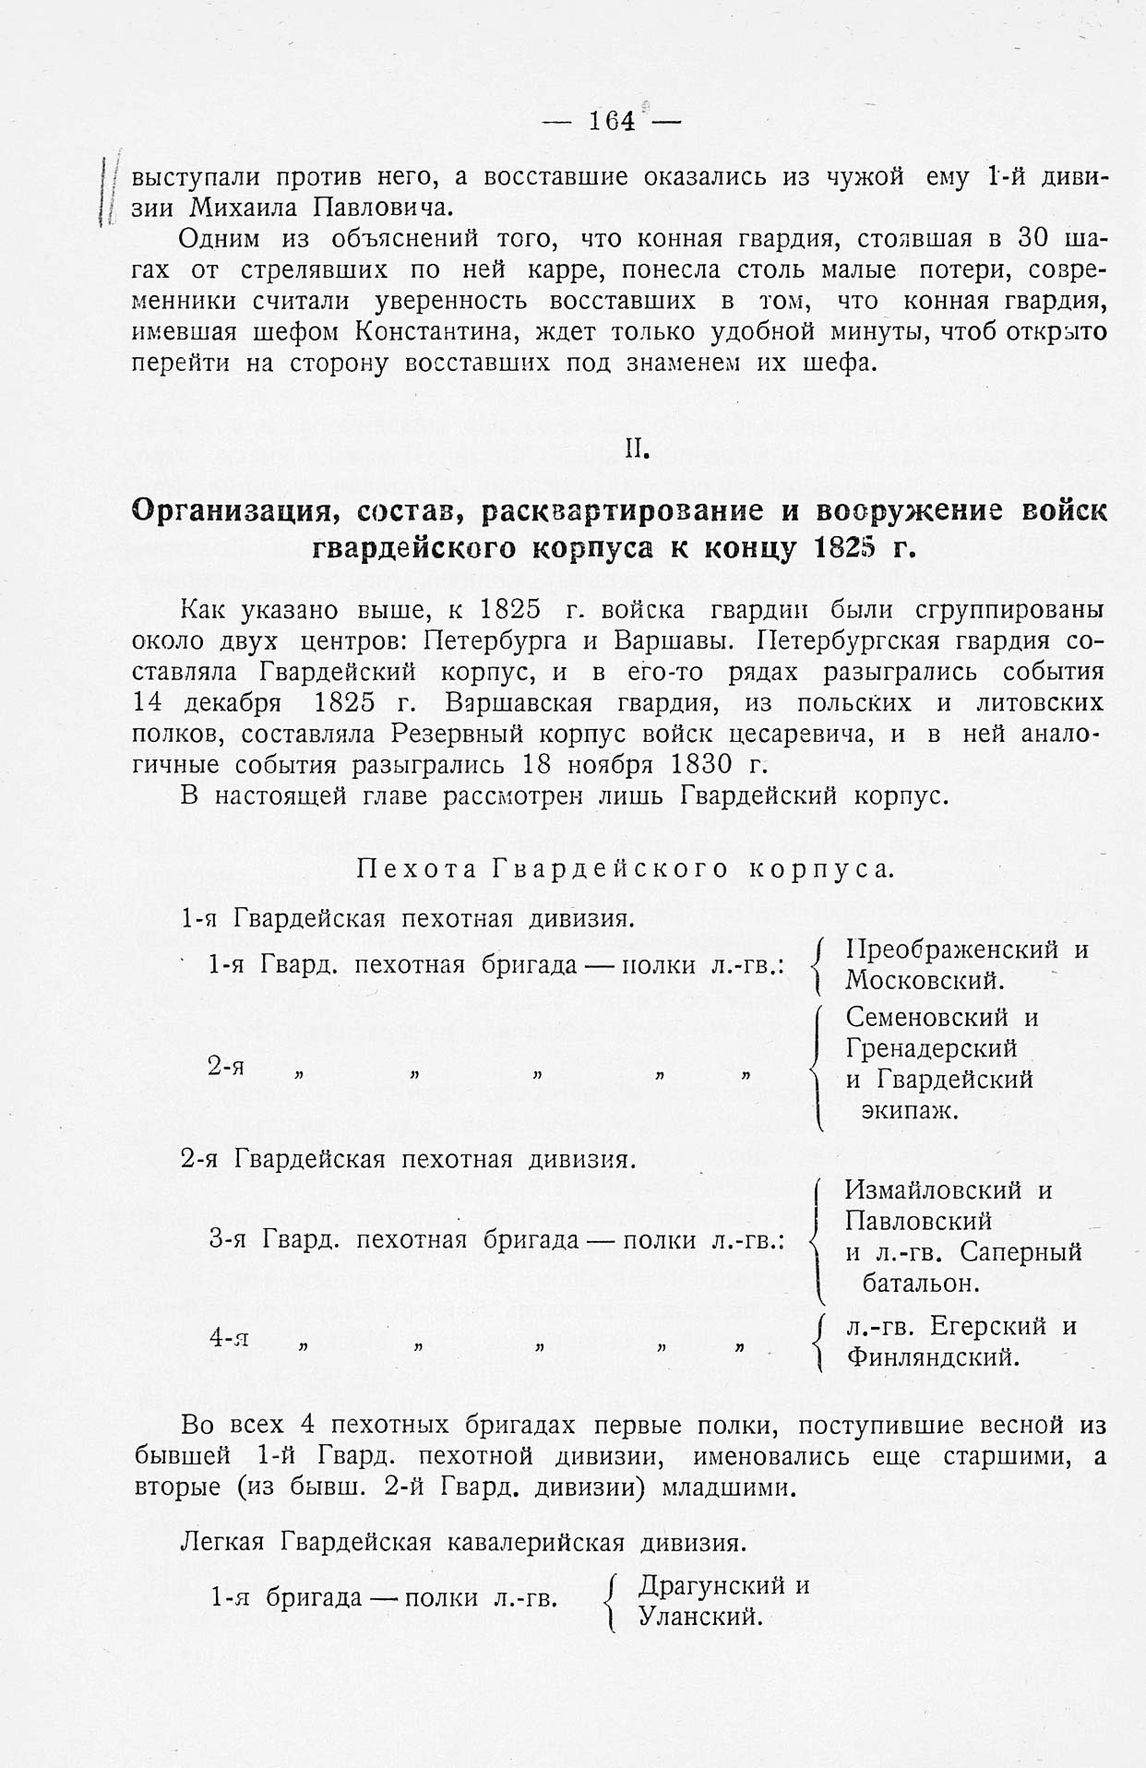 http://elib.shpl.ru/pages/566061/zooms/7